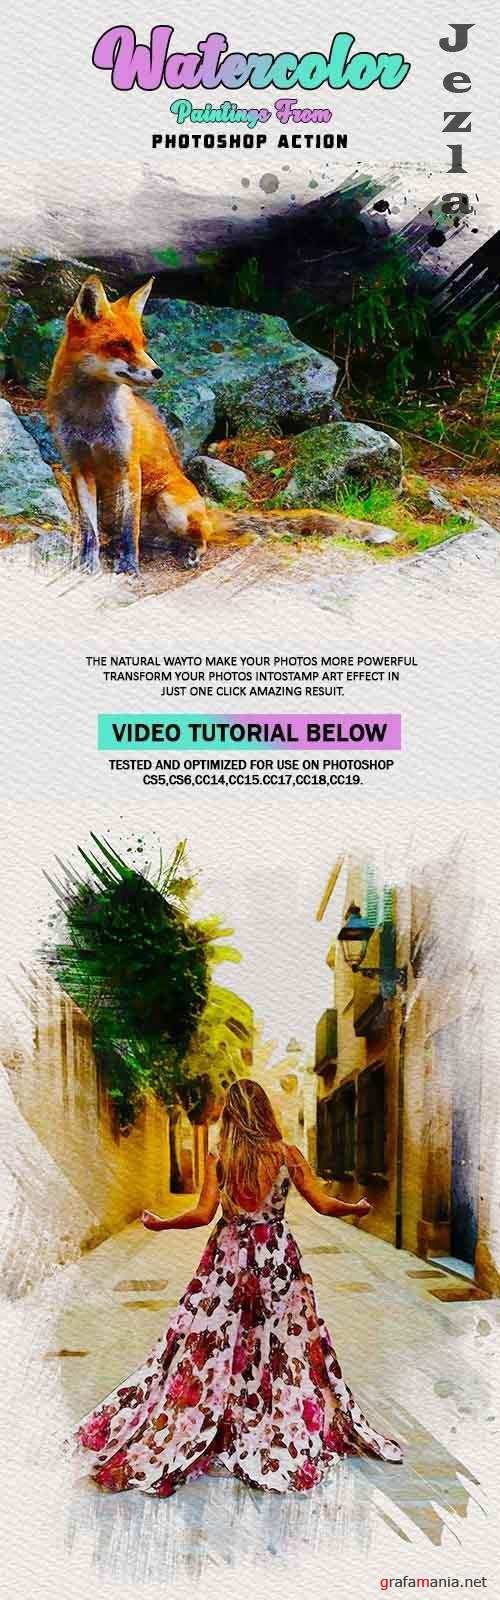 Watercolor Paintings From Photoshop Actions 26086825